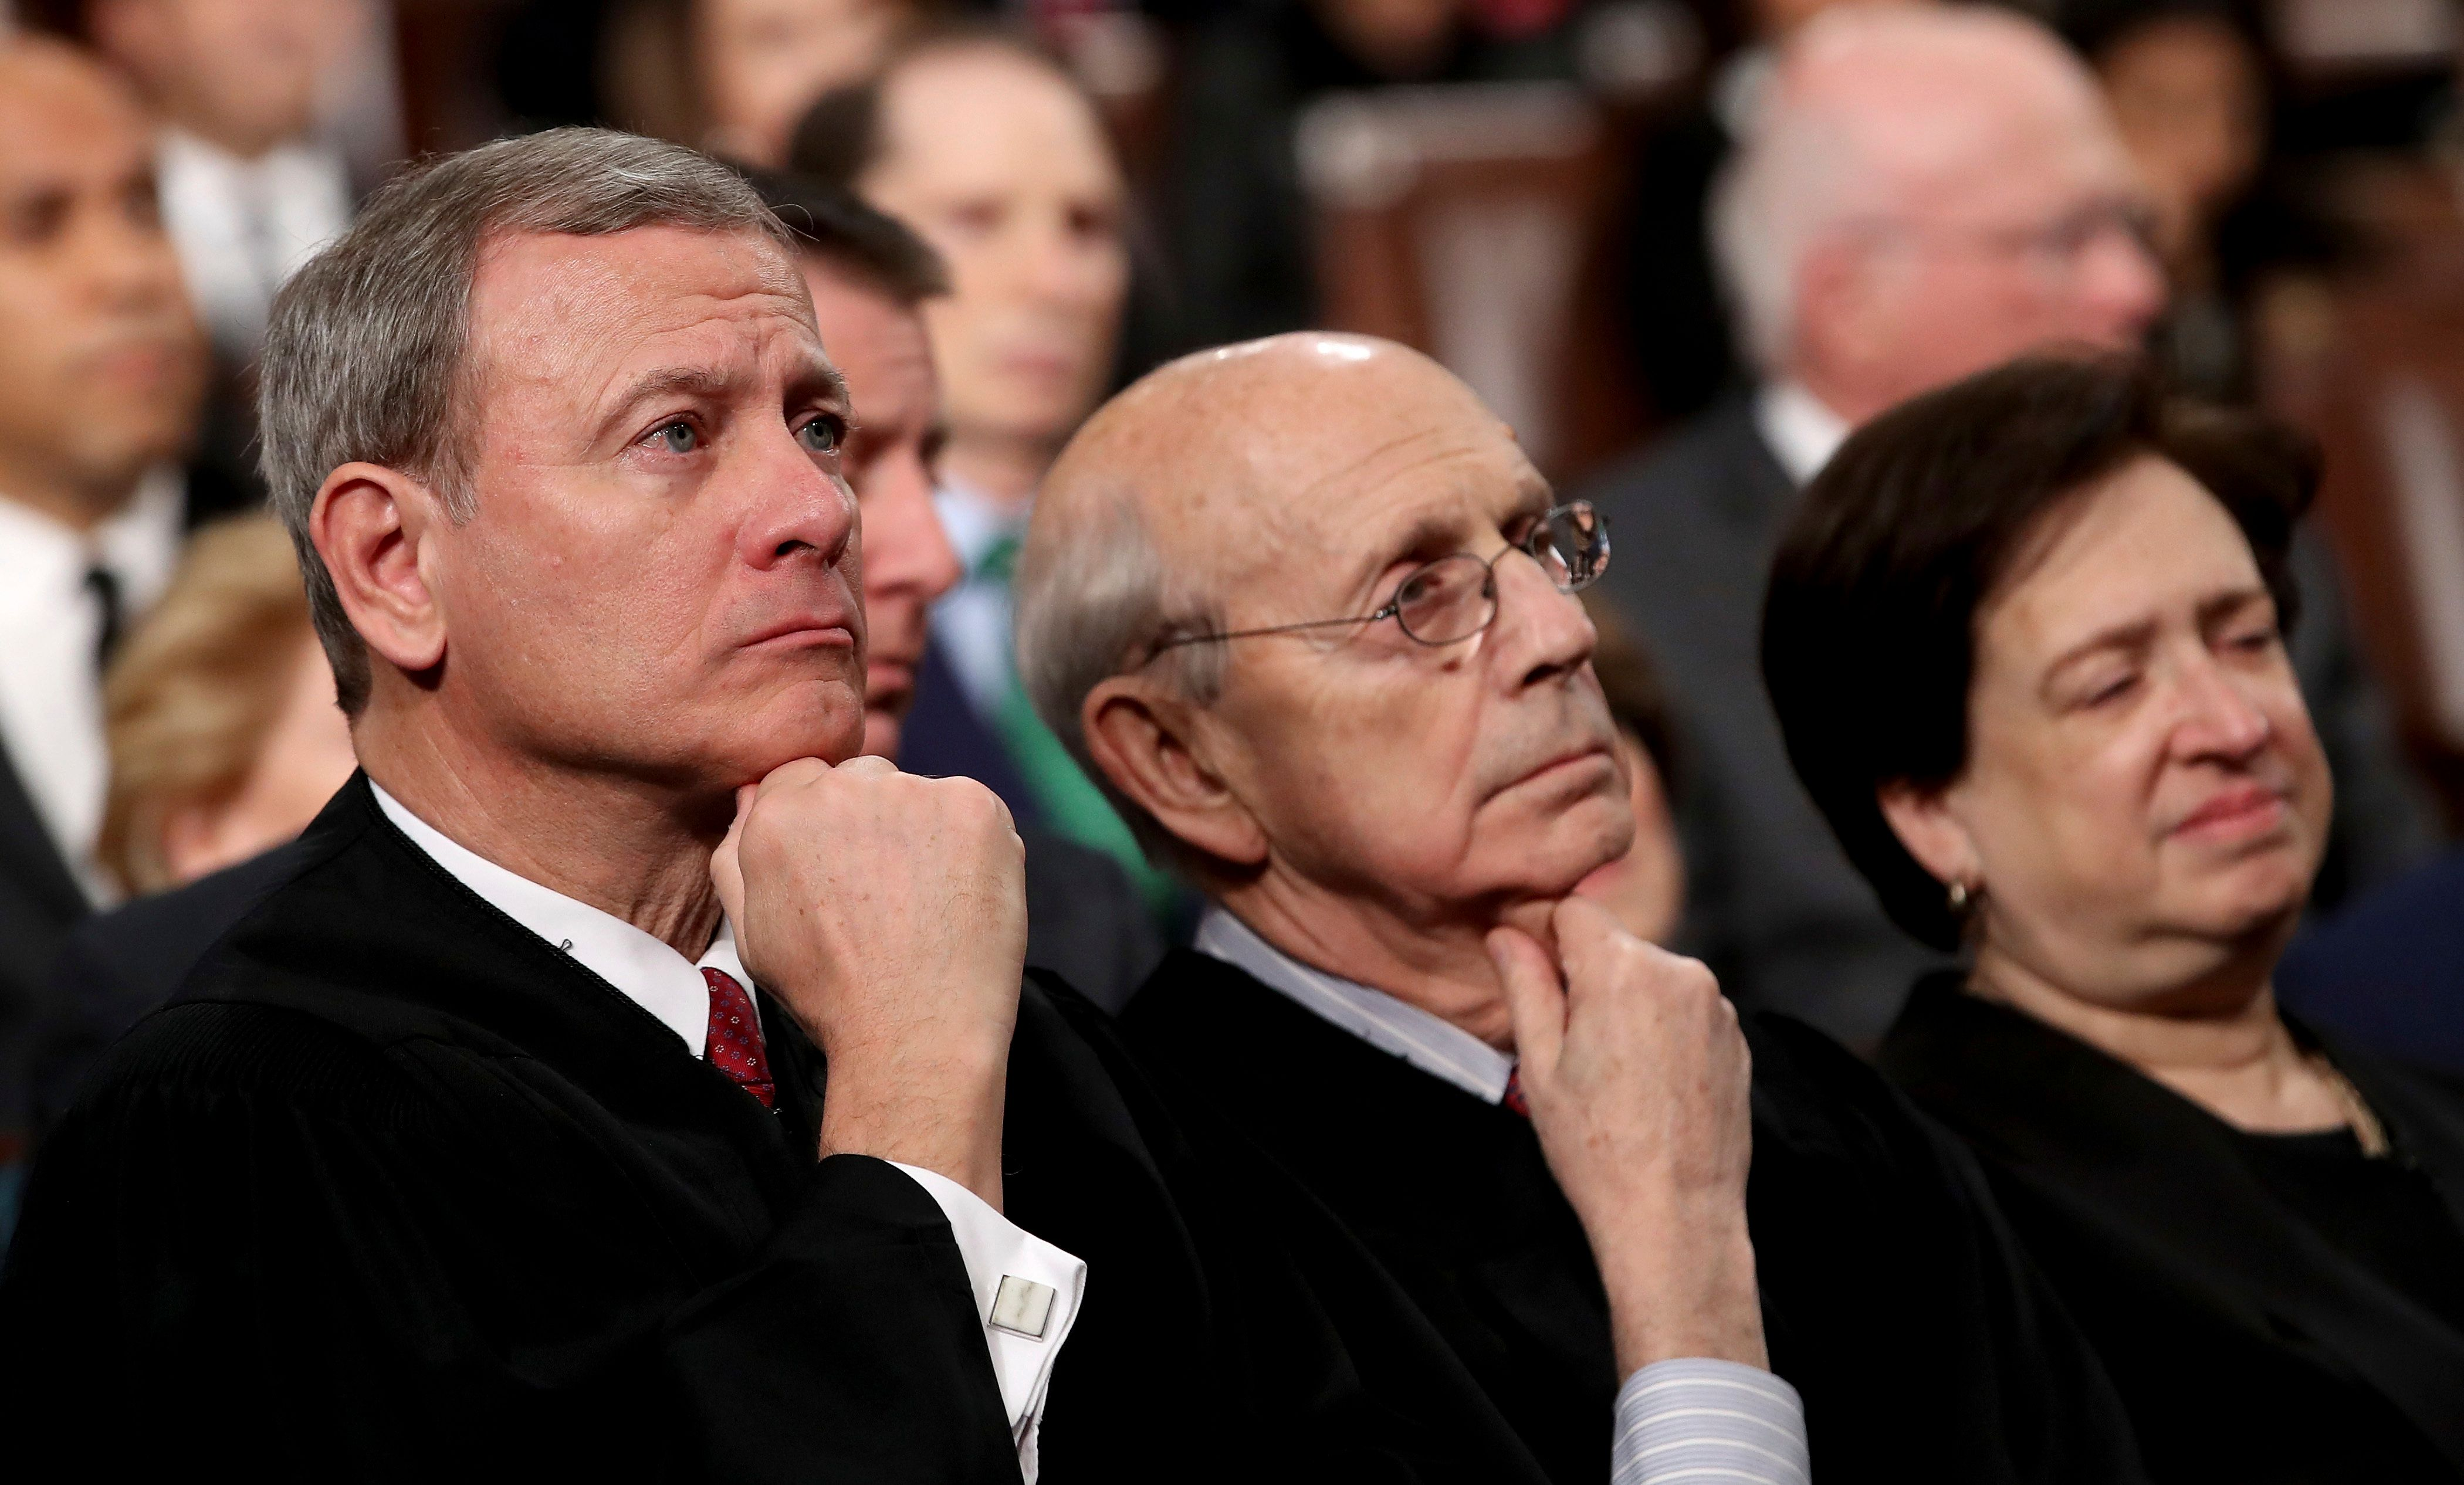 U.S. Supreme Court Chief Justice John Roberts, from left, Associate Justice Stephen Breyer, and Associate Justice Elena Kagan listens as President Donald Trump delivers his first State of the Union address in the House chamber of the U.S. Capitol to a joint session of Congress Tuesday, Jan. 30, 2018 in Washington. (Win McNamee/Pool via AP)